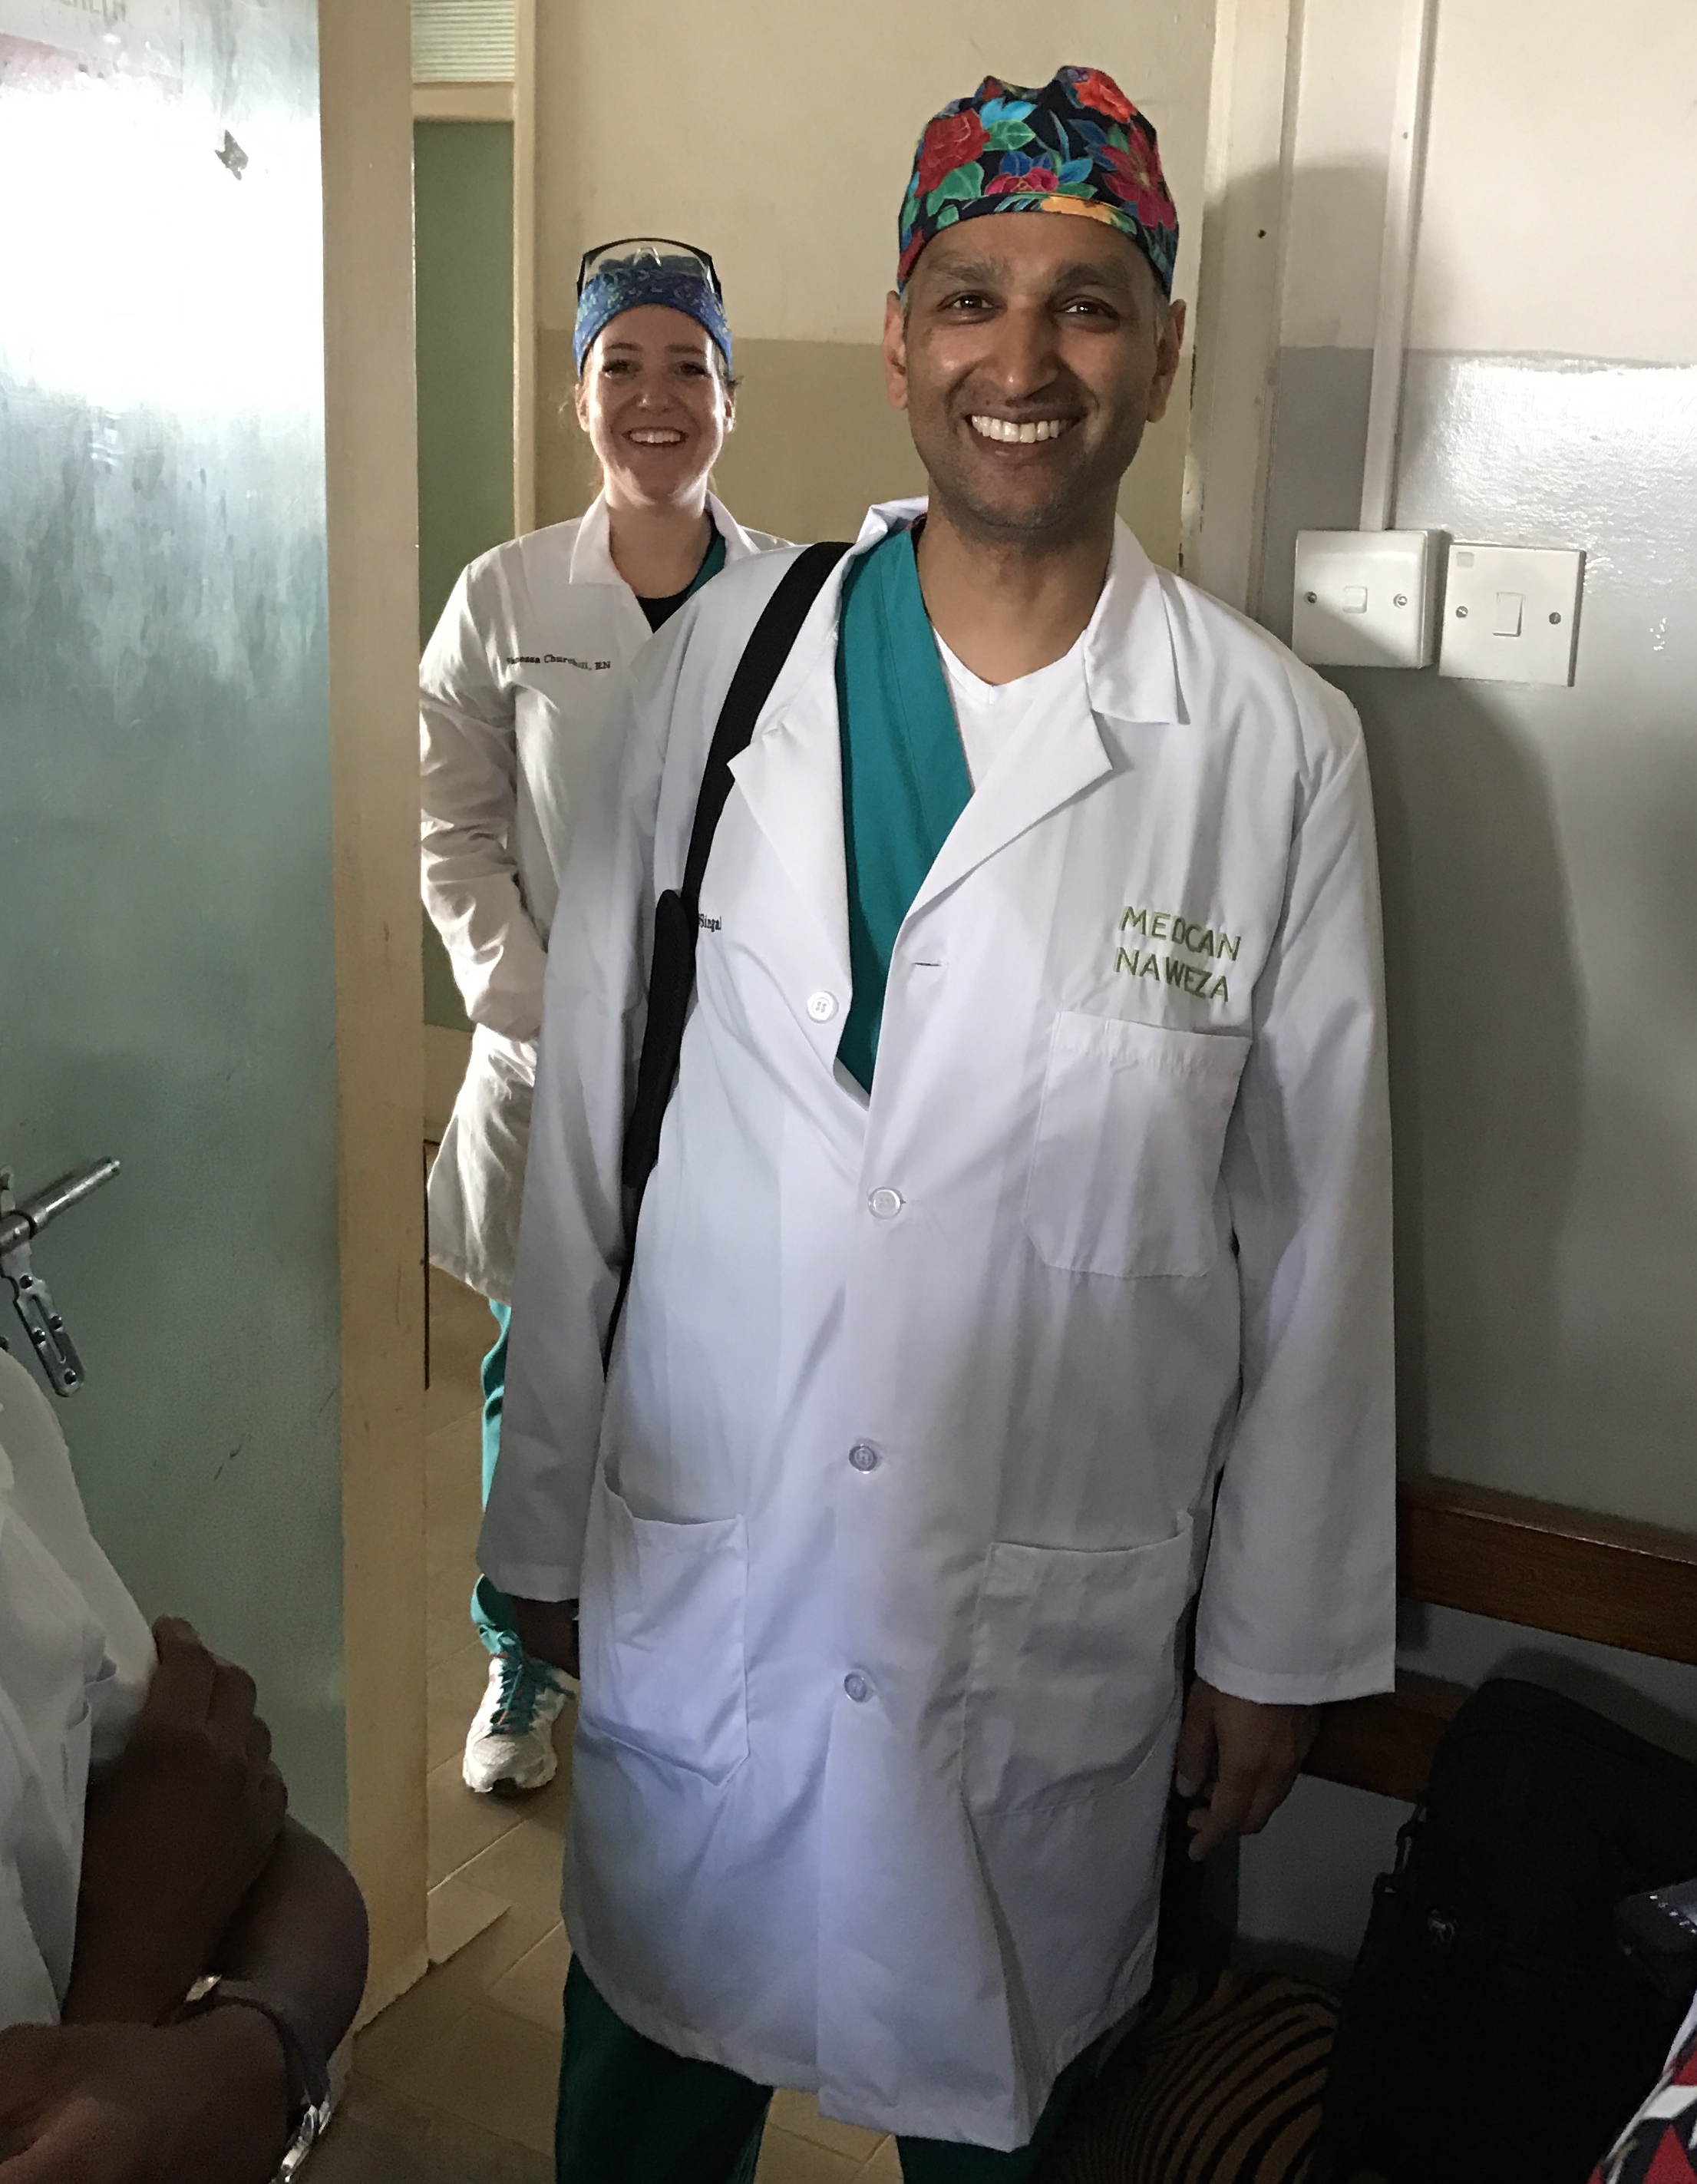 Dr. Rajiv and Vanessa after surgery.